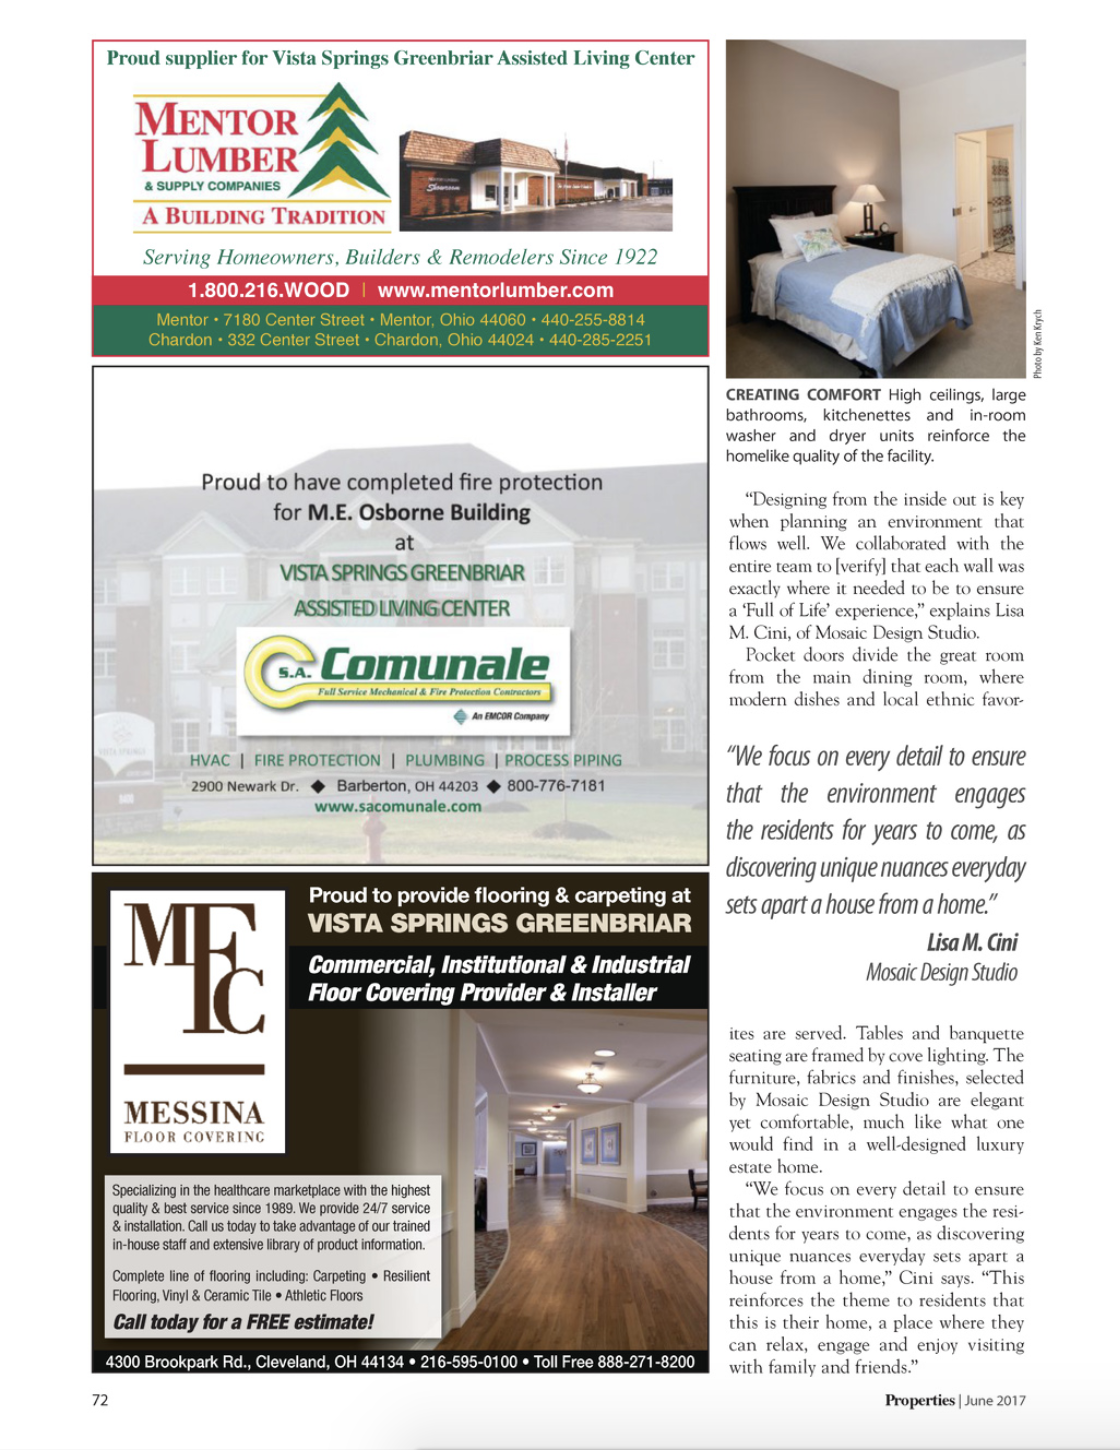 Mosaic Blog Design Studio Solid State Relay Newark Check Out The Article And Why Is Leading Edge In Senior Living